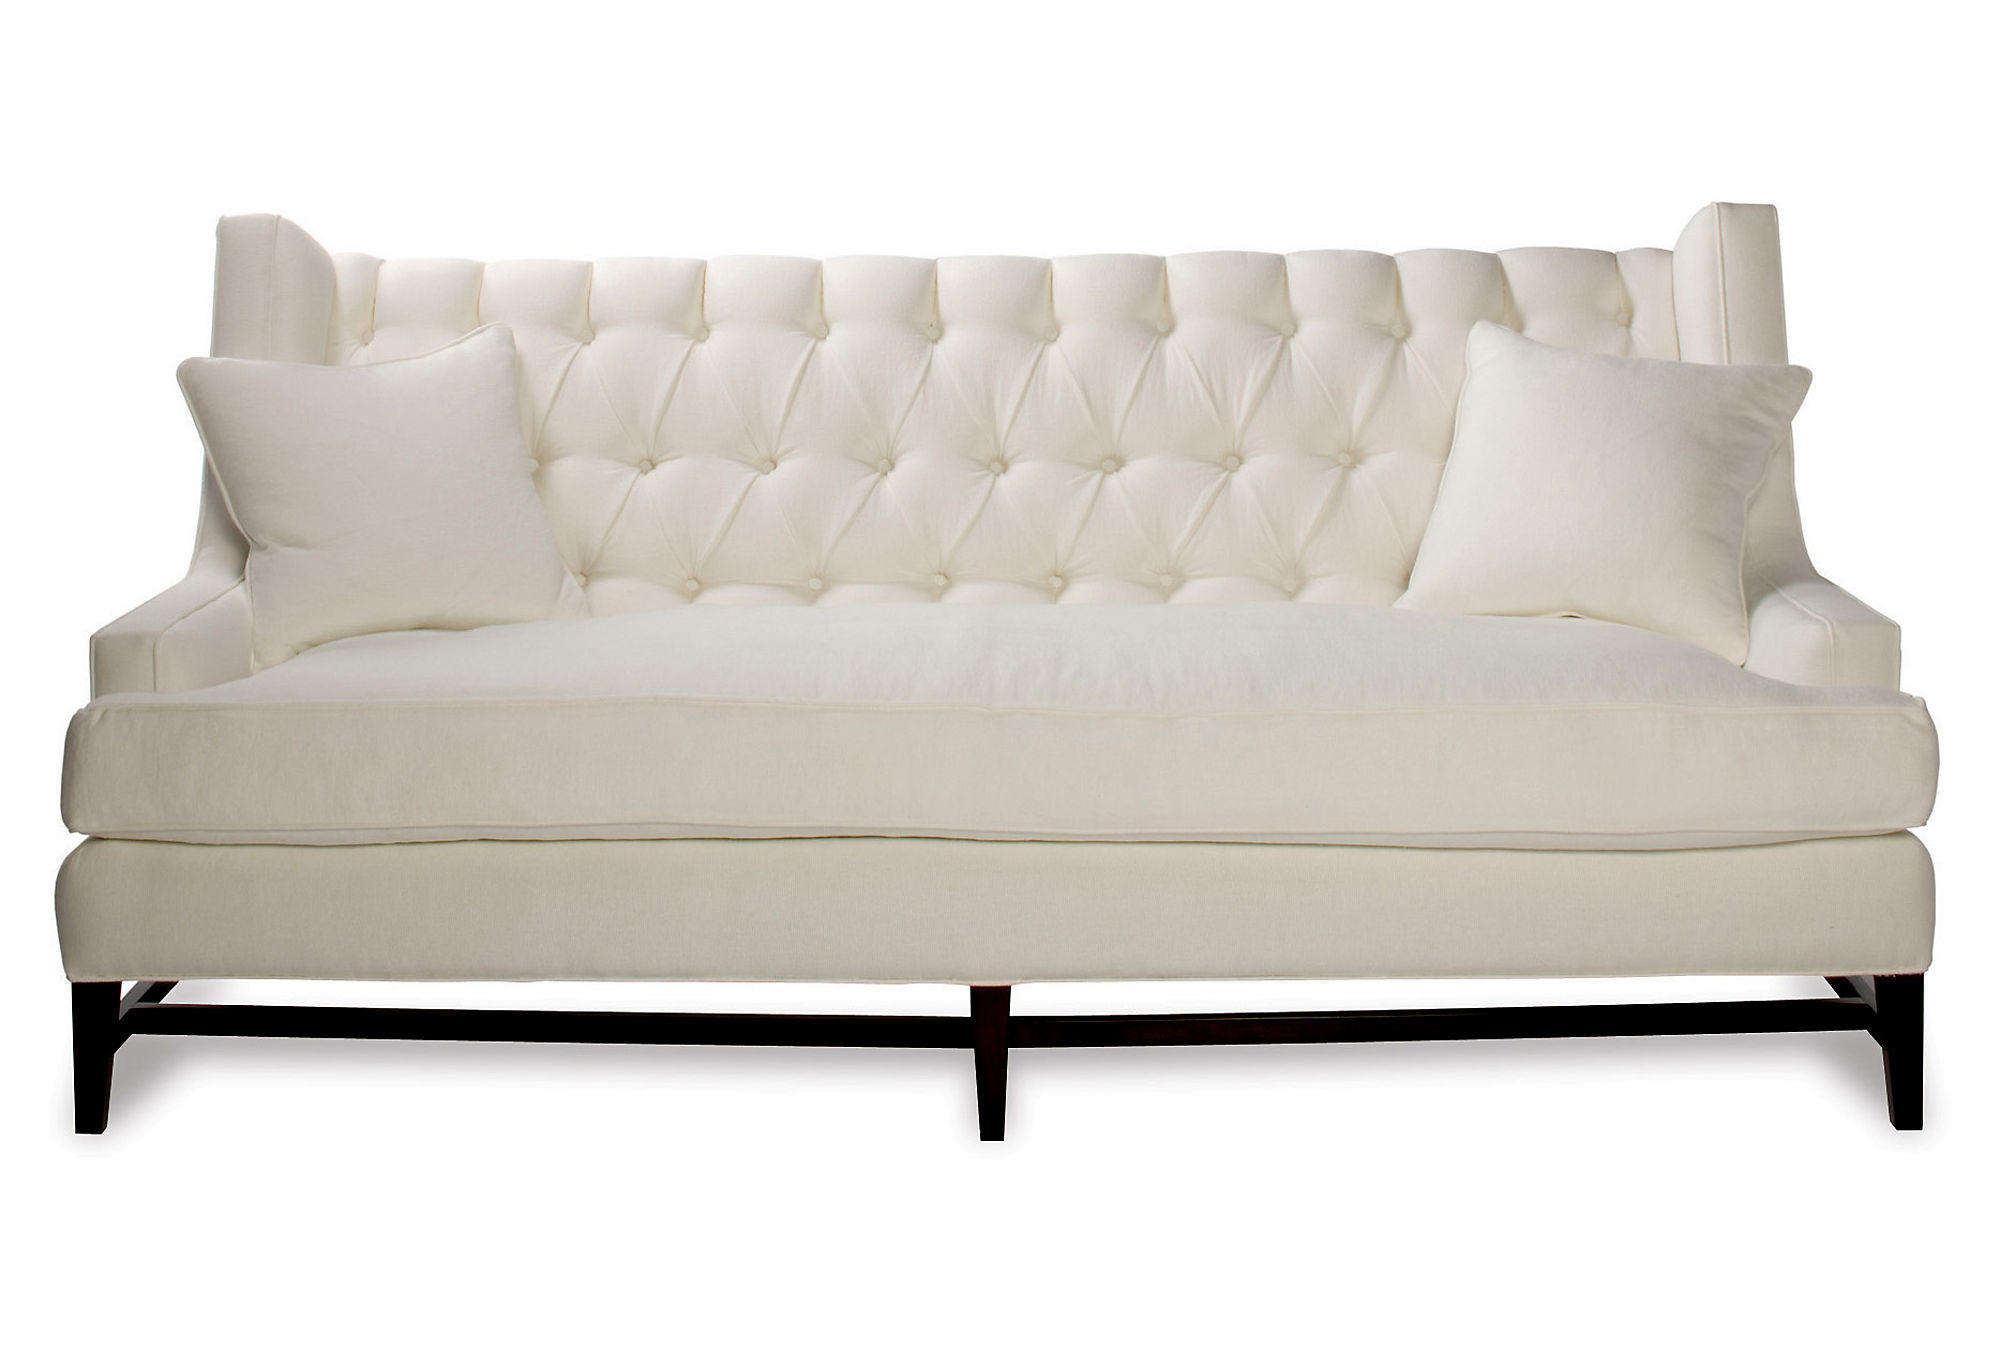 Eaton 86 tufted linen sofa white sofas from one kings lane for White linen sectional sofa